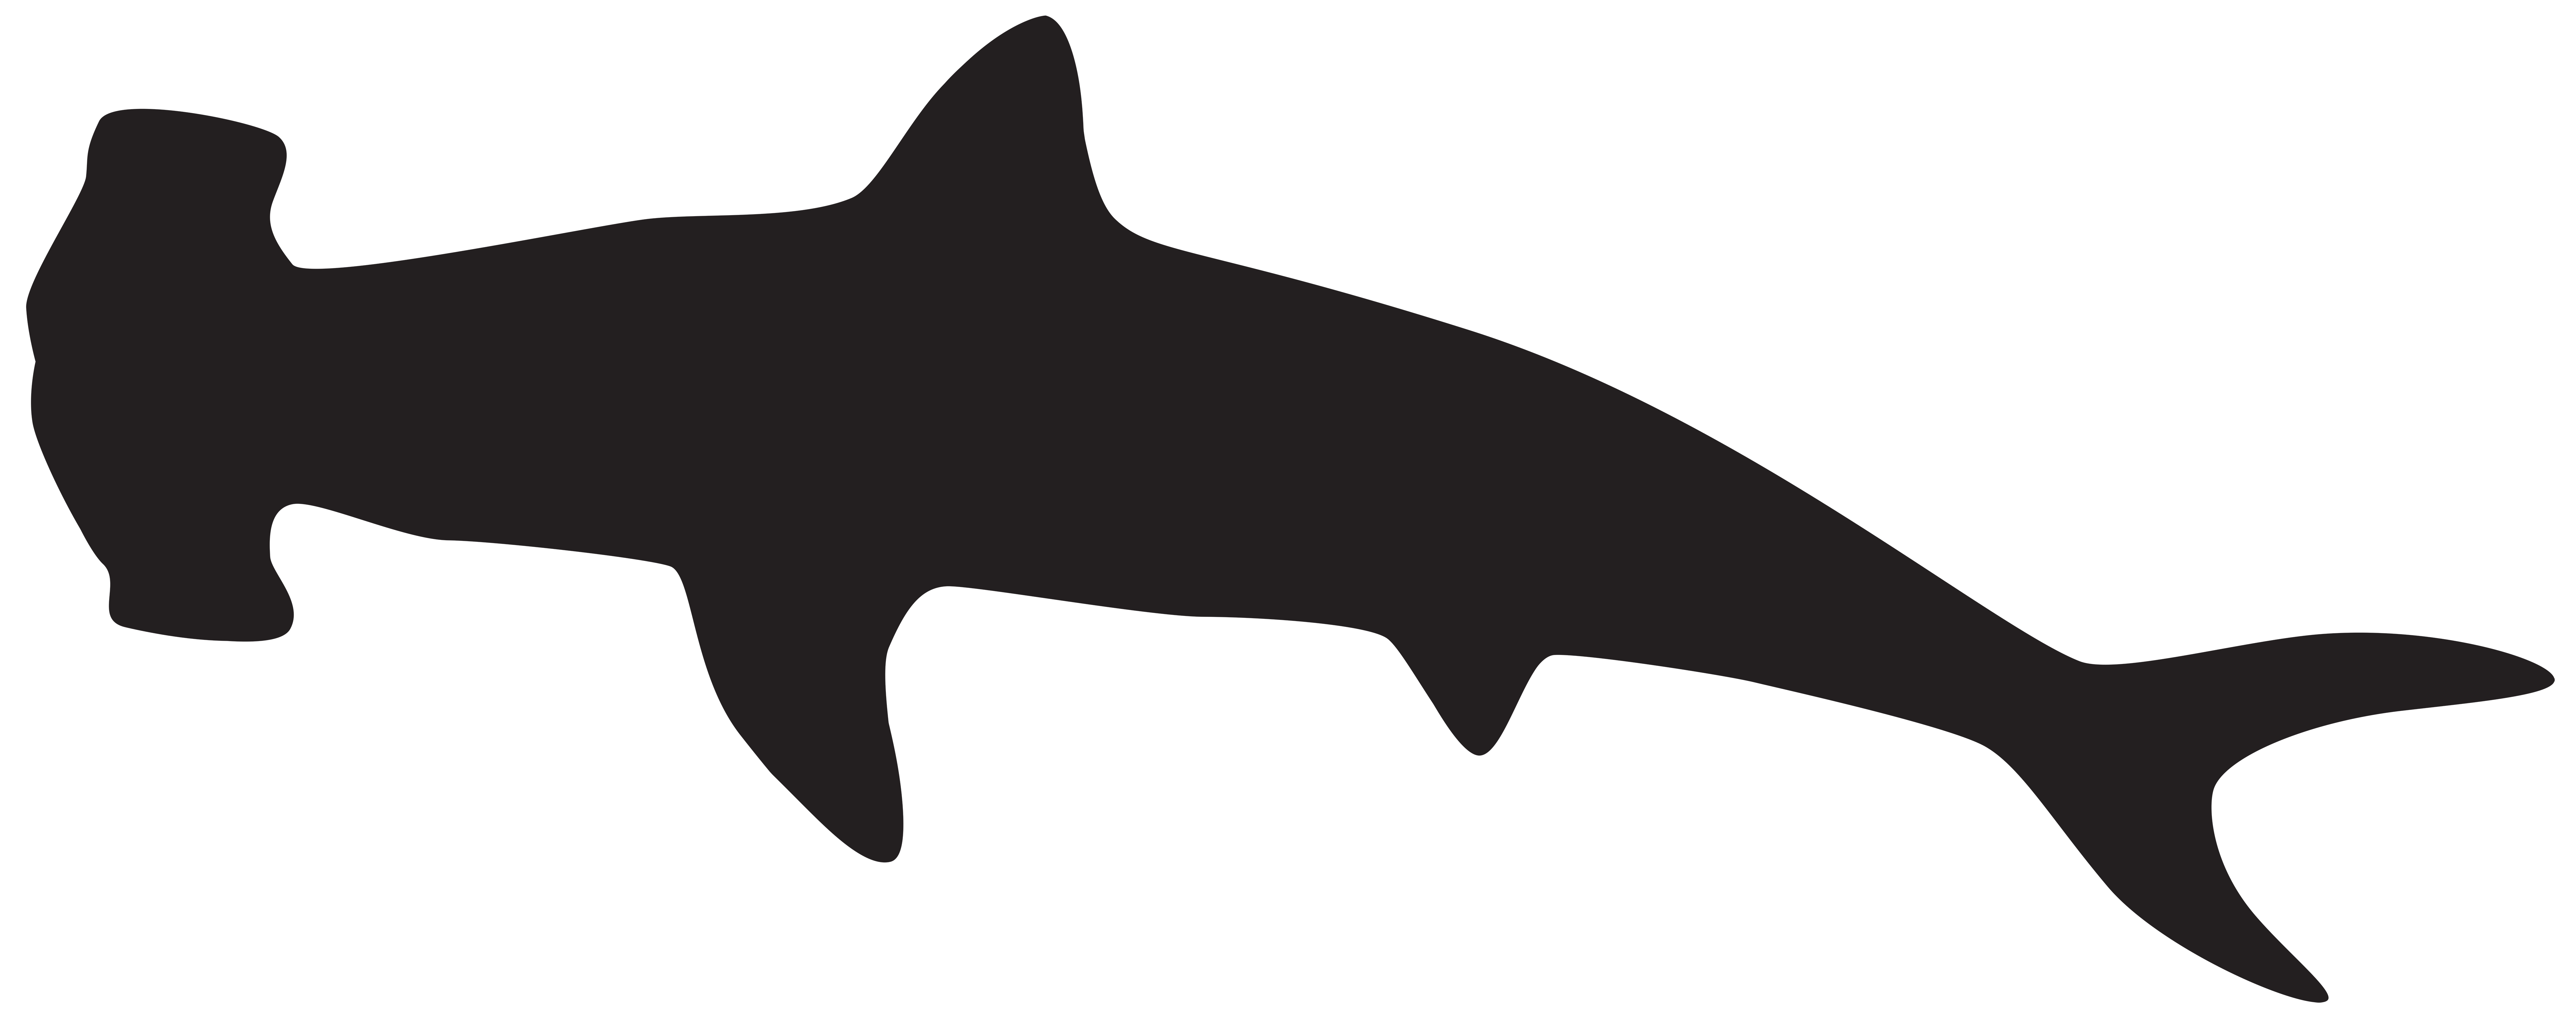 8000x3188 Shark Clipart Silhouette Collection